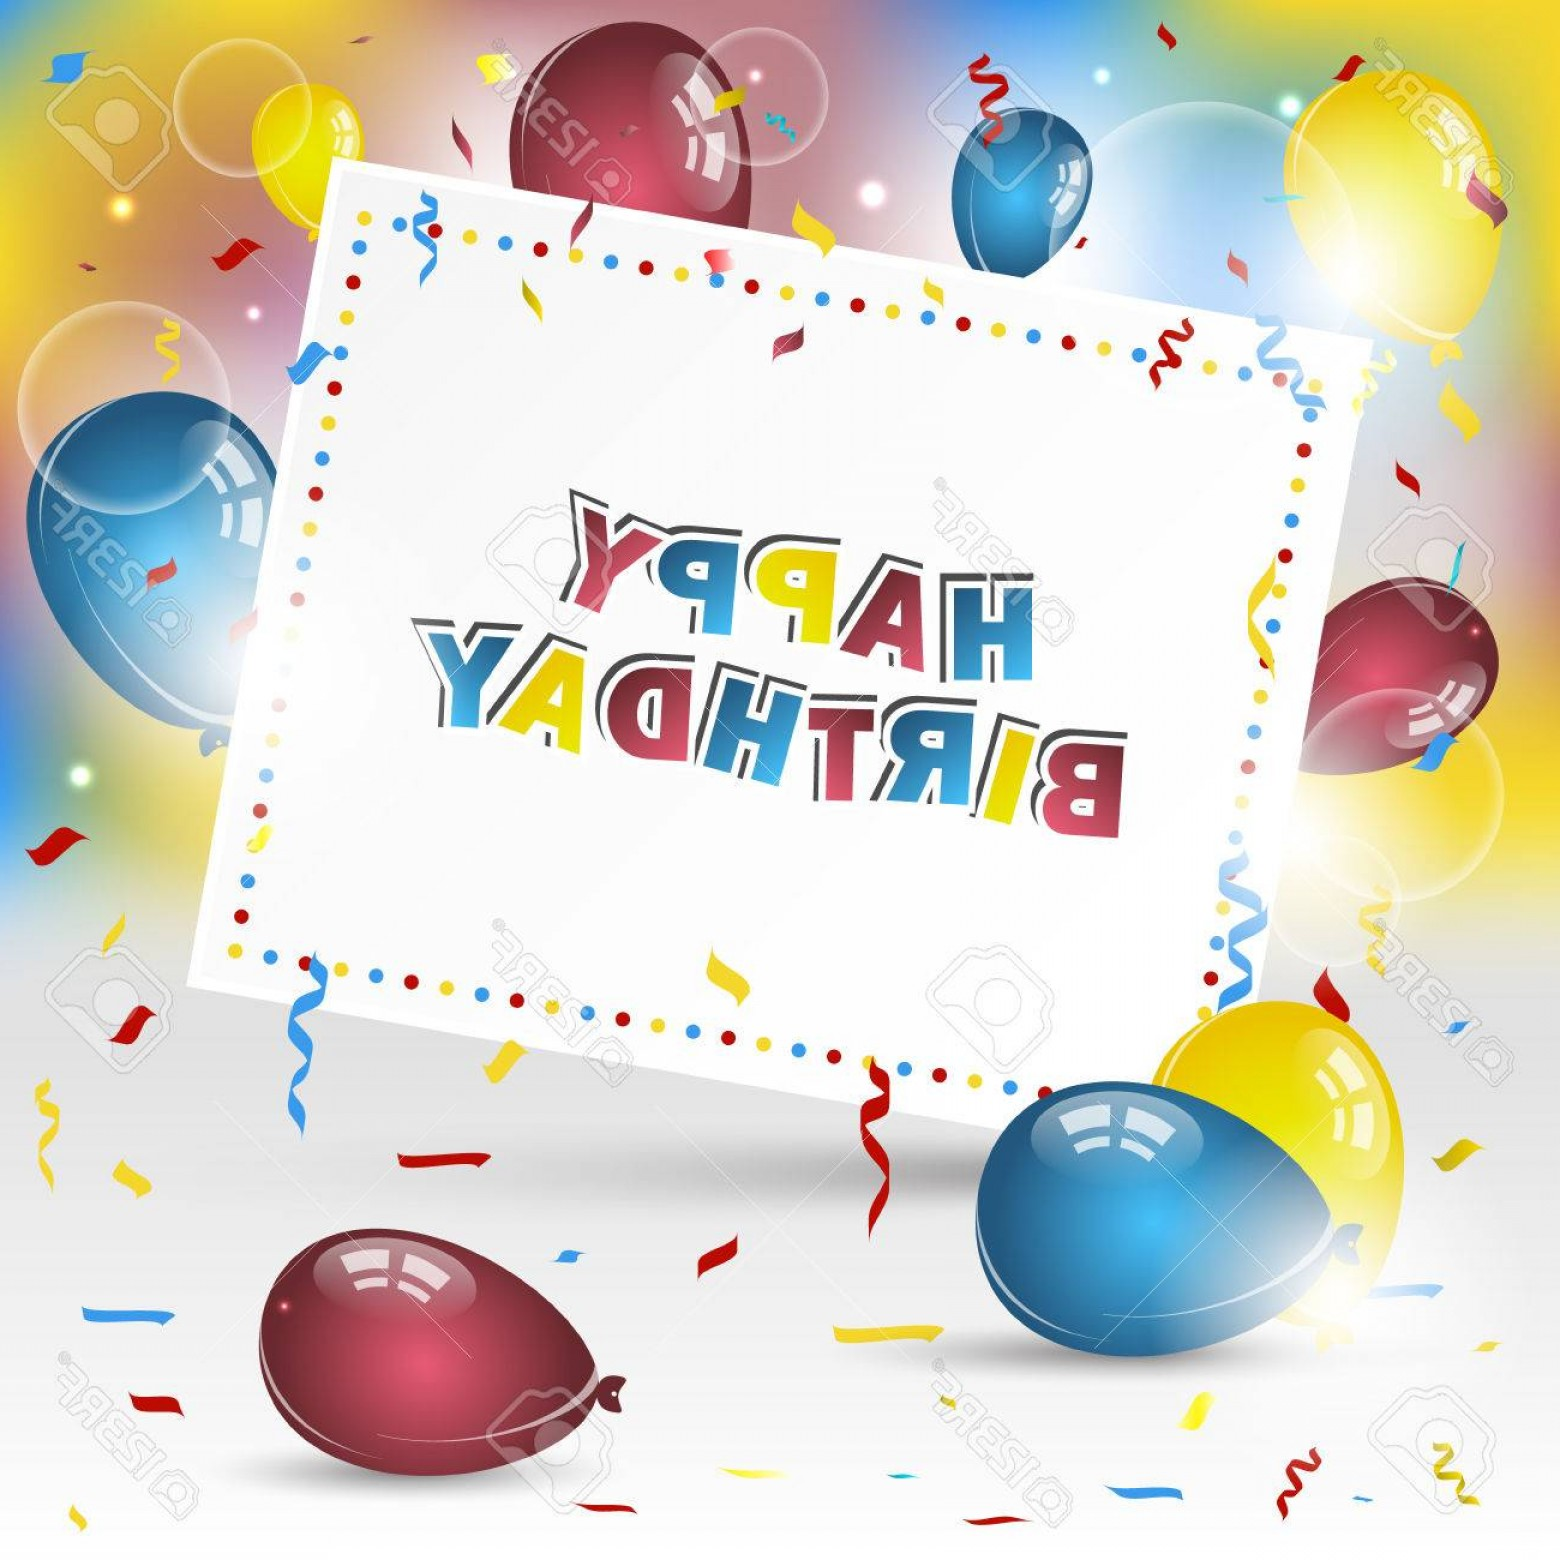 Happy Birthday Vector Art Backdrop: Photostock Vector Happy Birthday Vector Background With Colorful Confetti And Balloons Design For Your Greeting Card